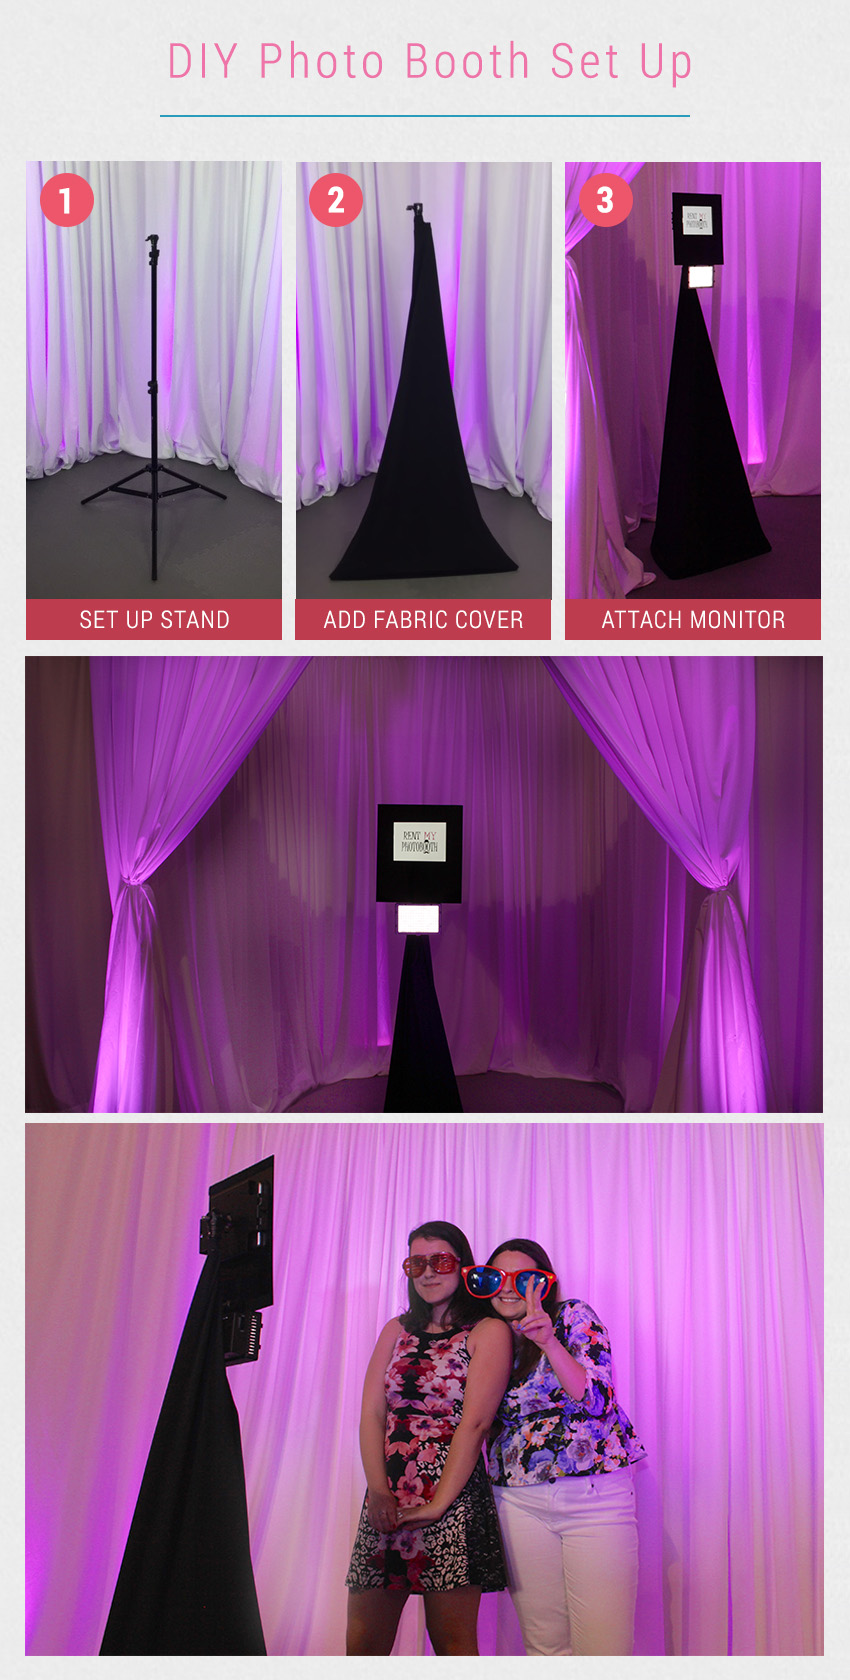 Diy photo booth setup in 3 easy steps bridalpulse diy photo booth everyone loves a photo booth for wedding receptions the good news is that there are solutioingenieria Images